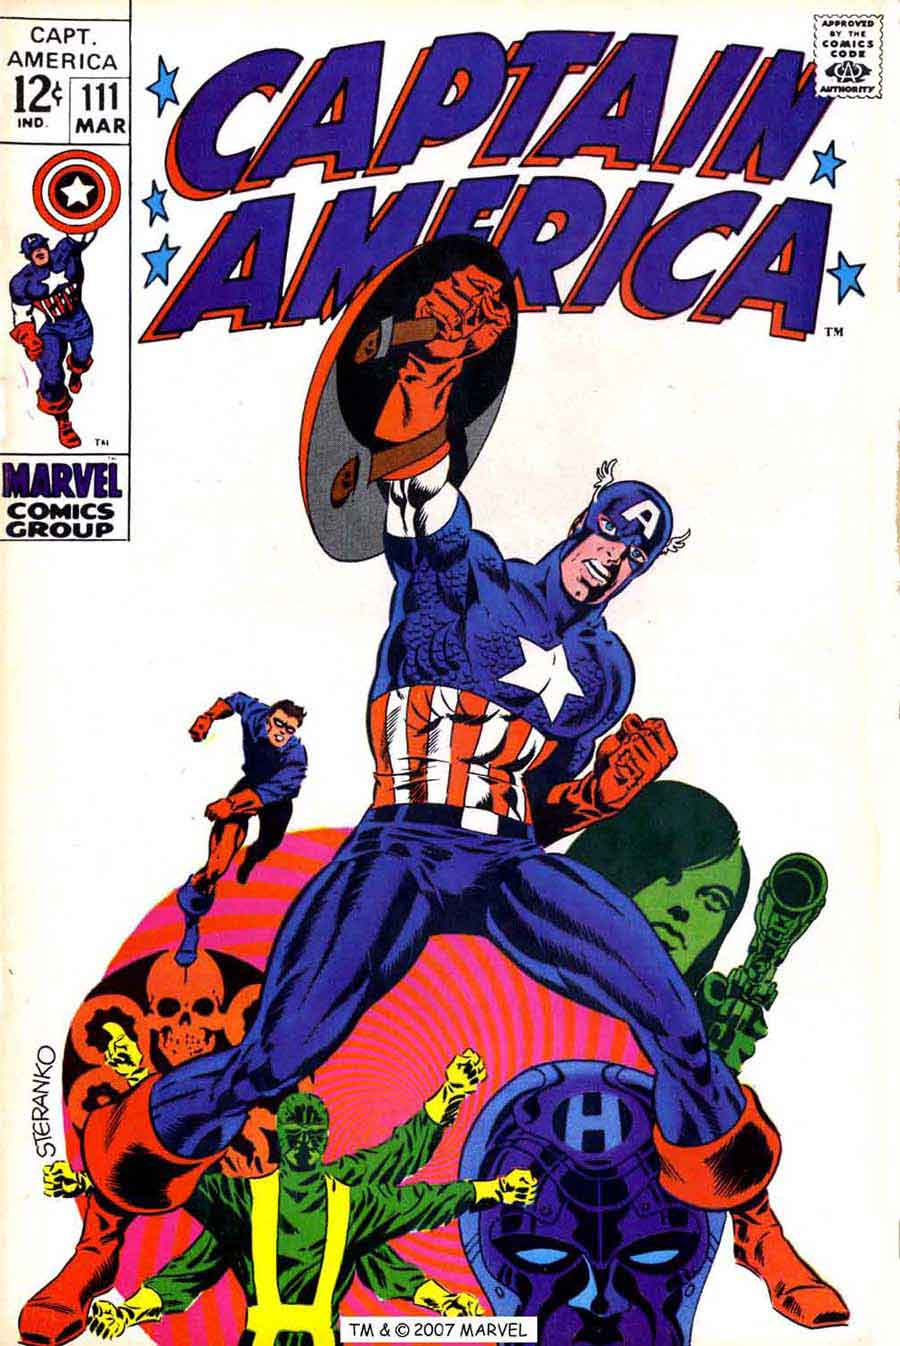 Captain America v1 #111 marvel comic book cover art by Jim Steranko